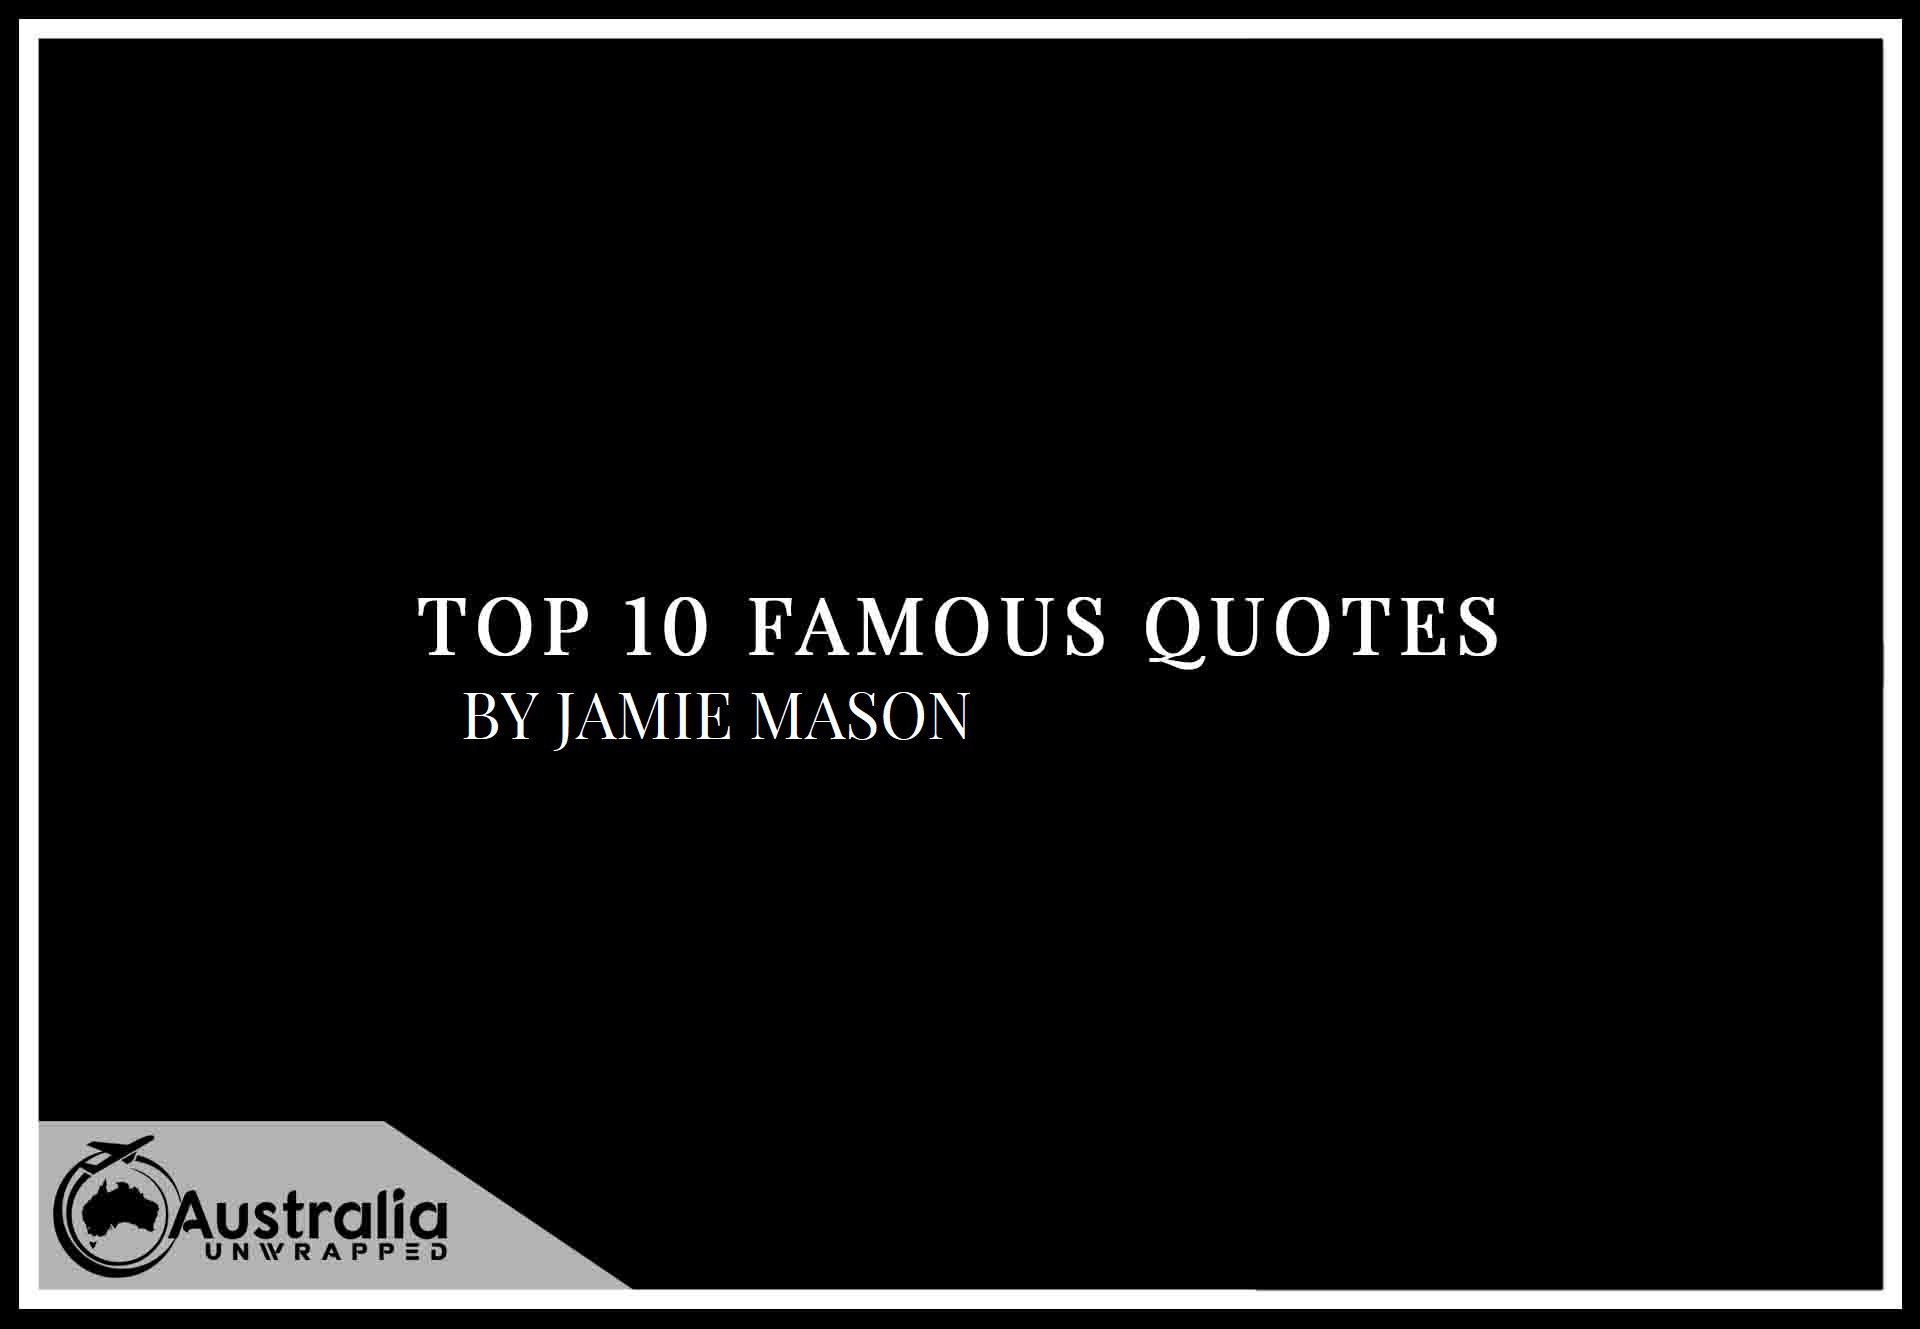 Top 10 Famous Quotes by Author Jamie Mason